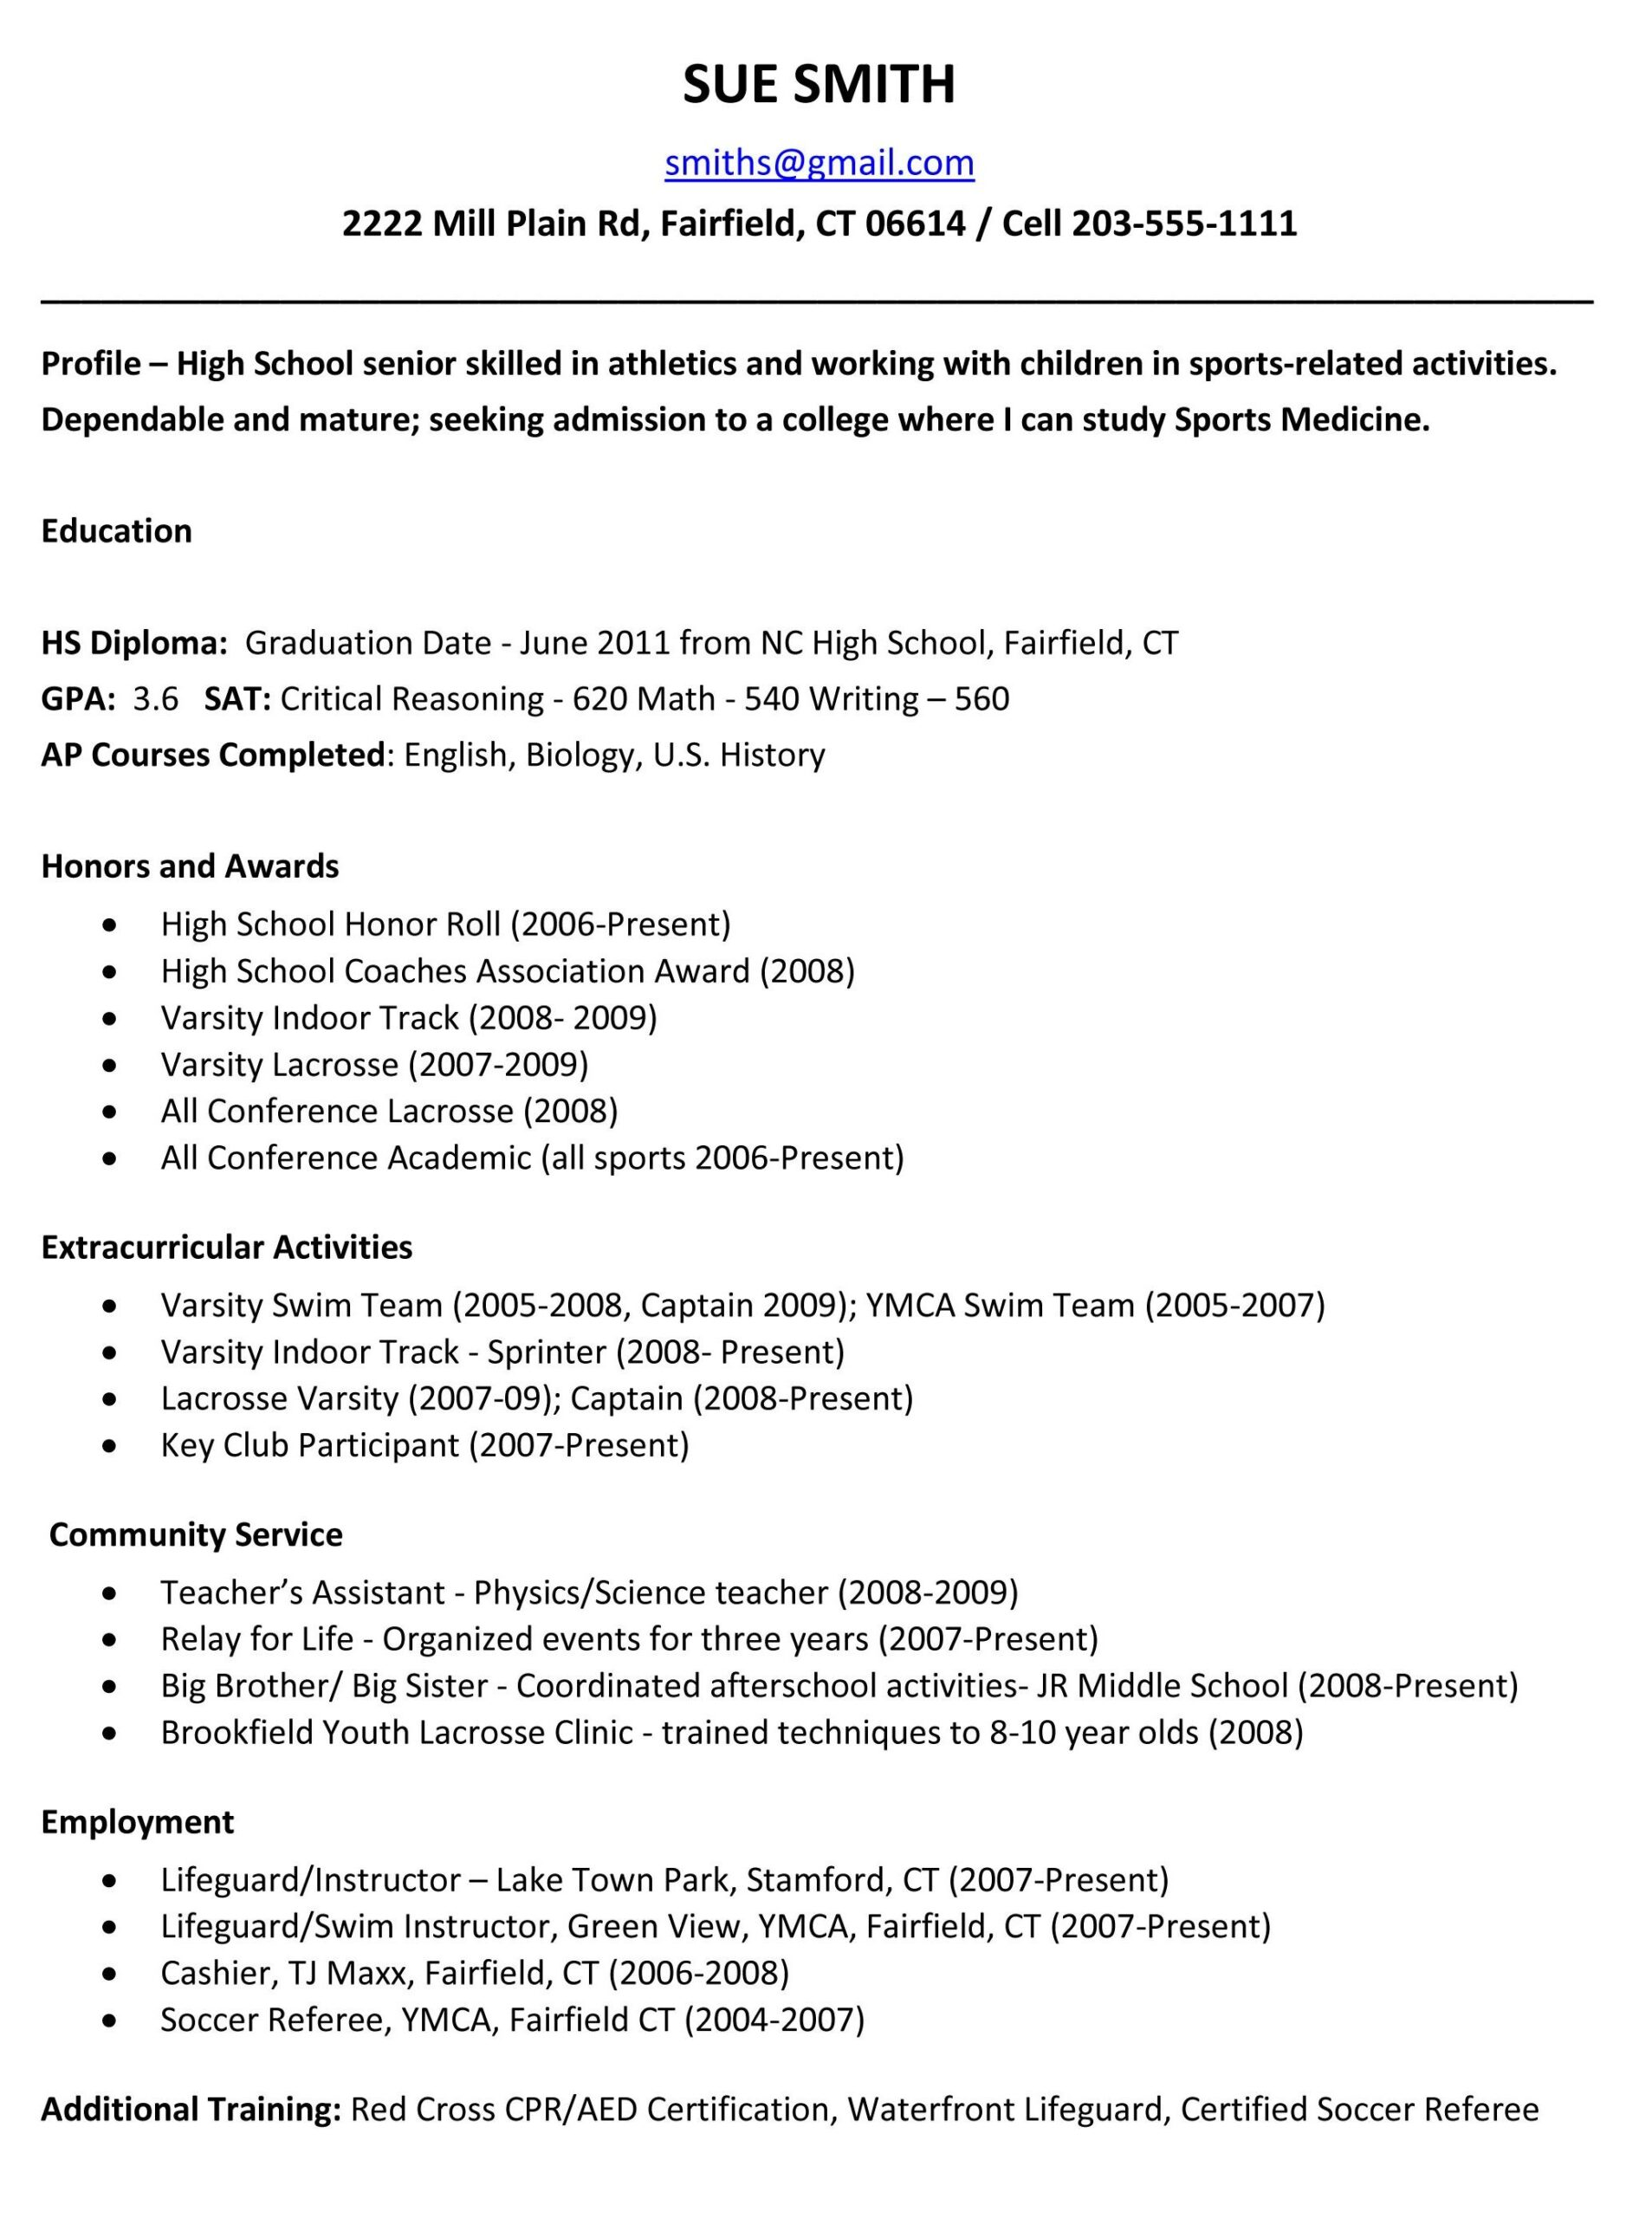 sample resumes high school resume template college application job for students computer Resume A Job Resume For High School Students